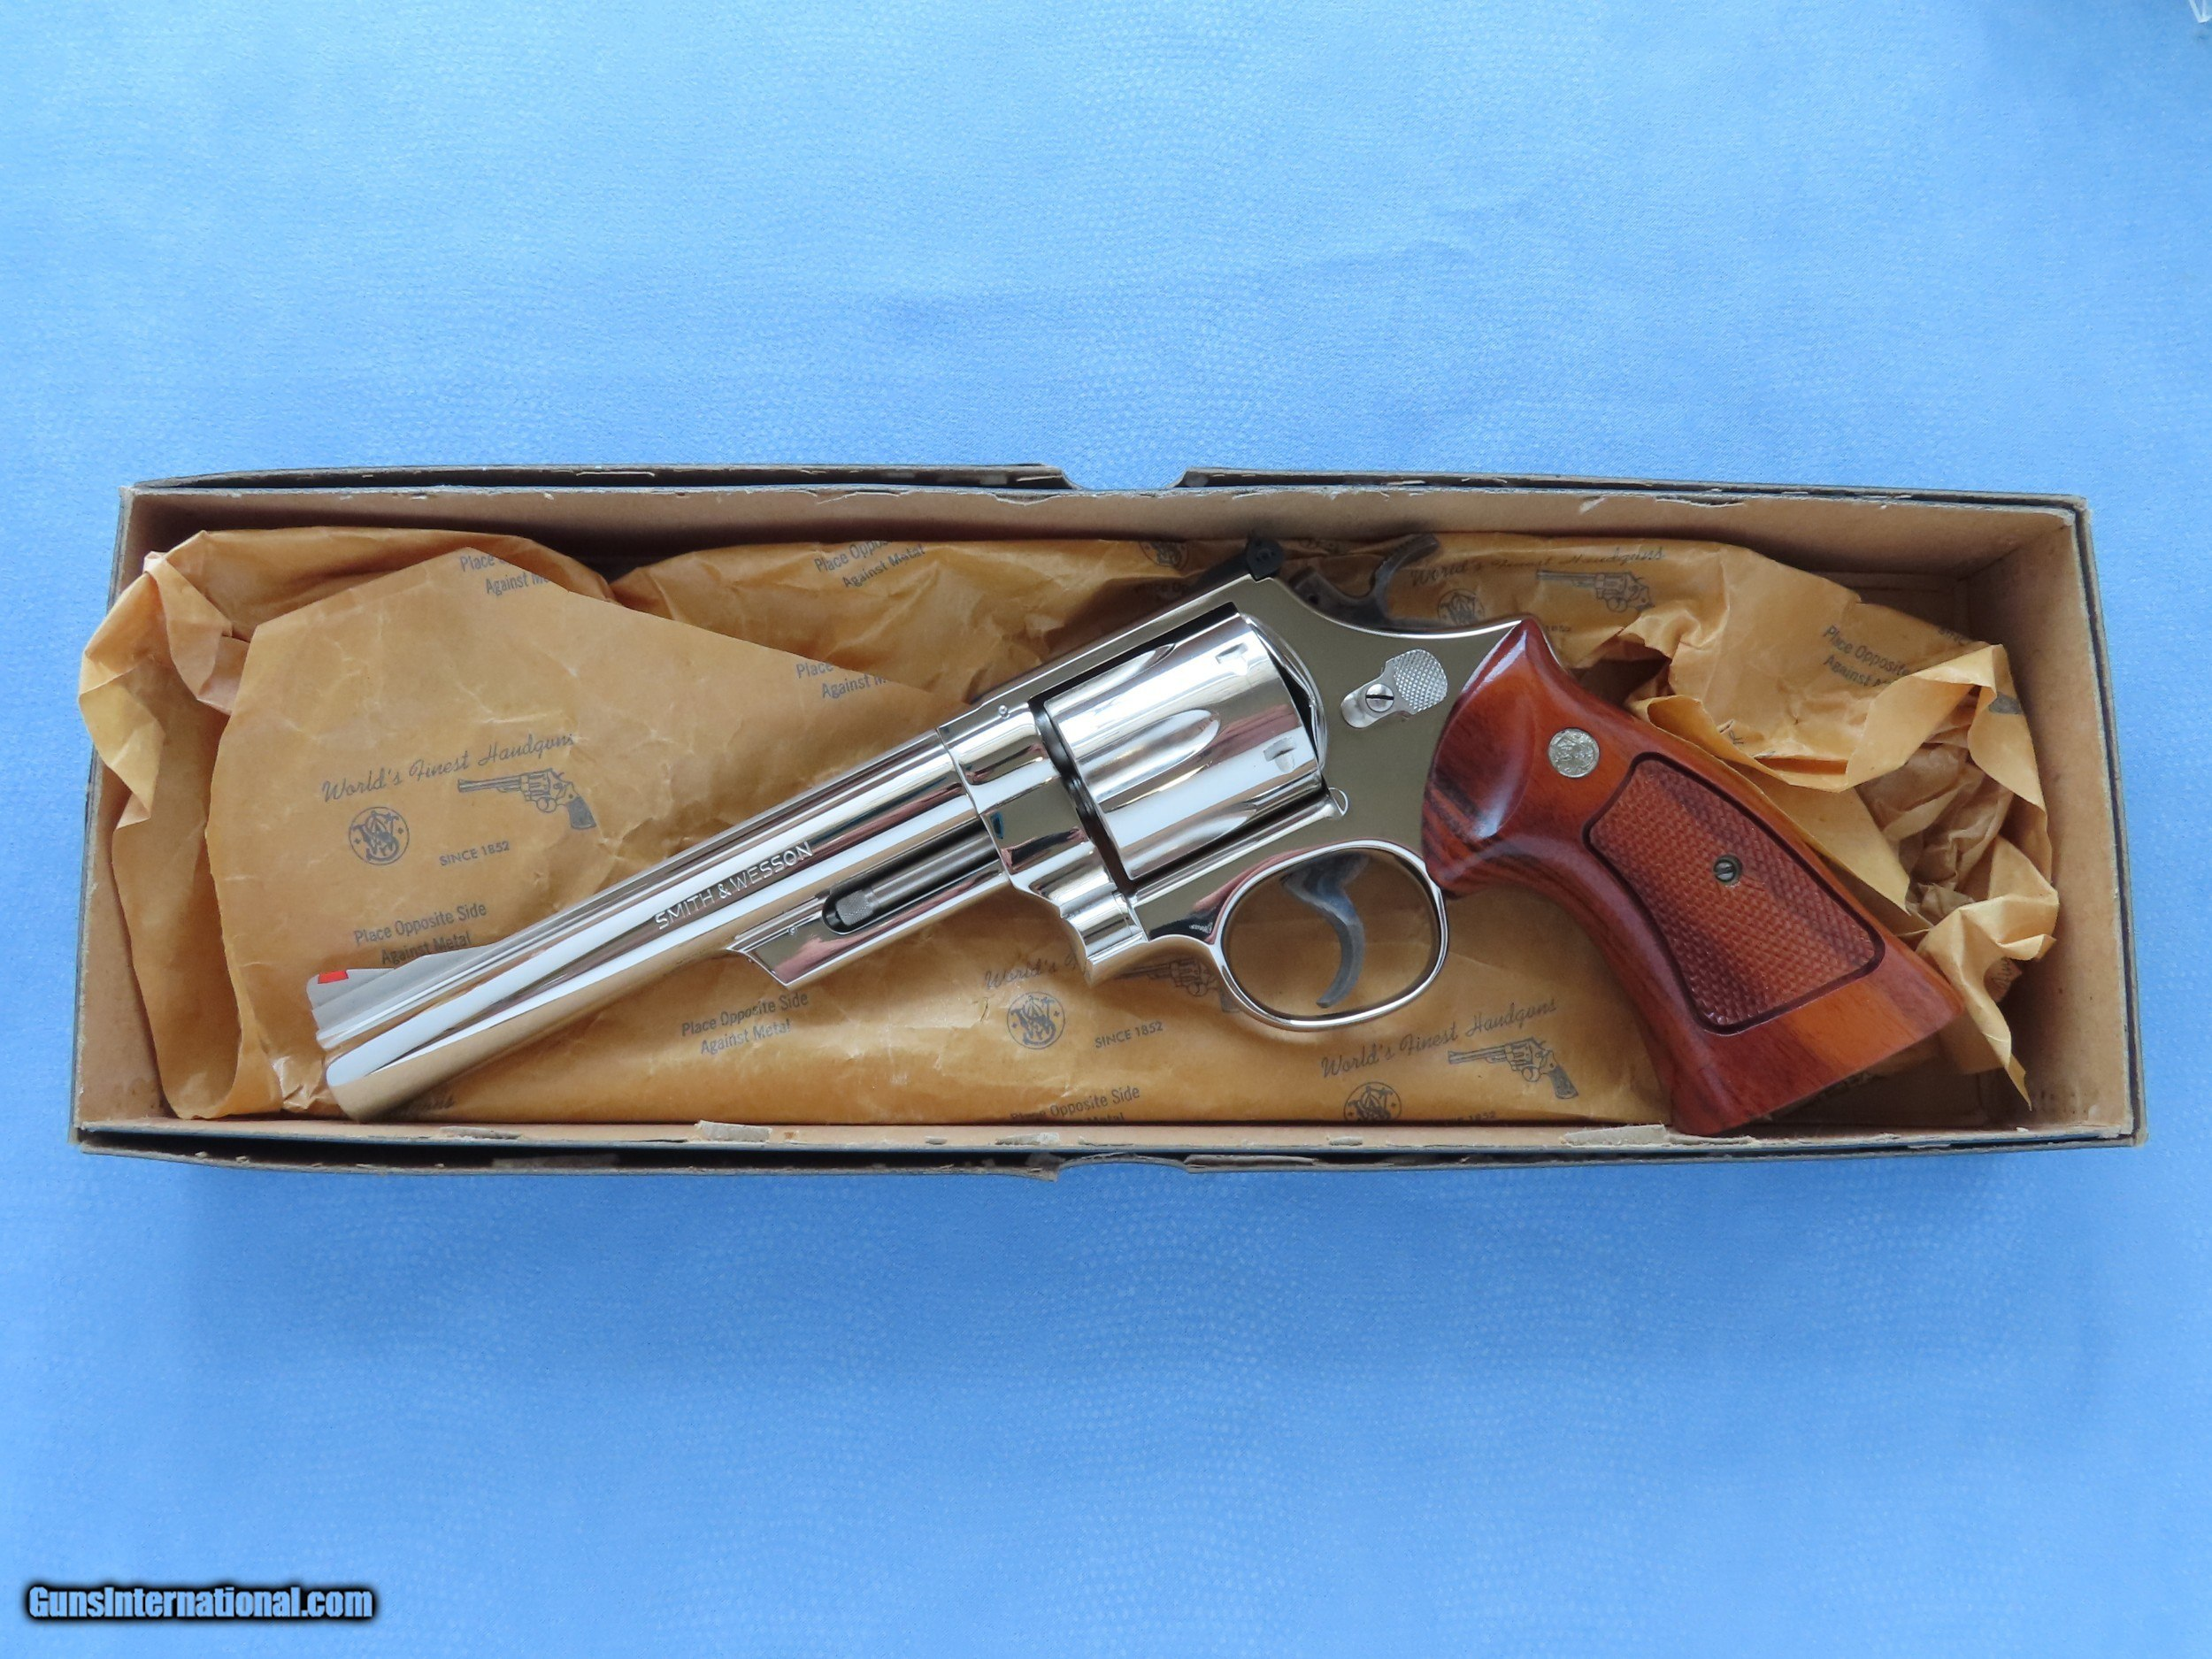 Smith /& Wesson .44 Magnum Model 29 Revolver Parts and Maintenance Manual